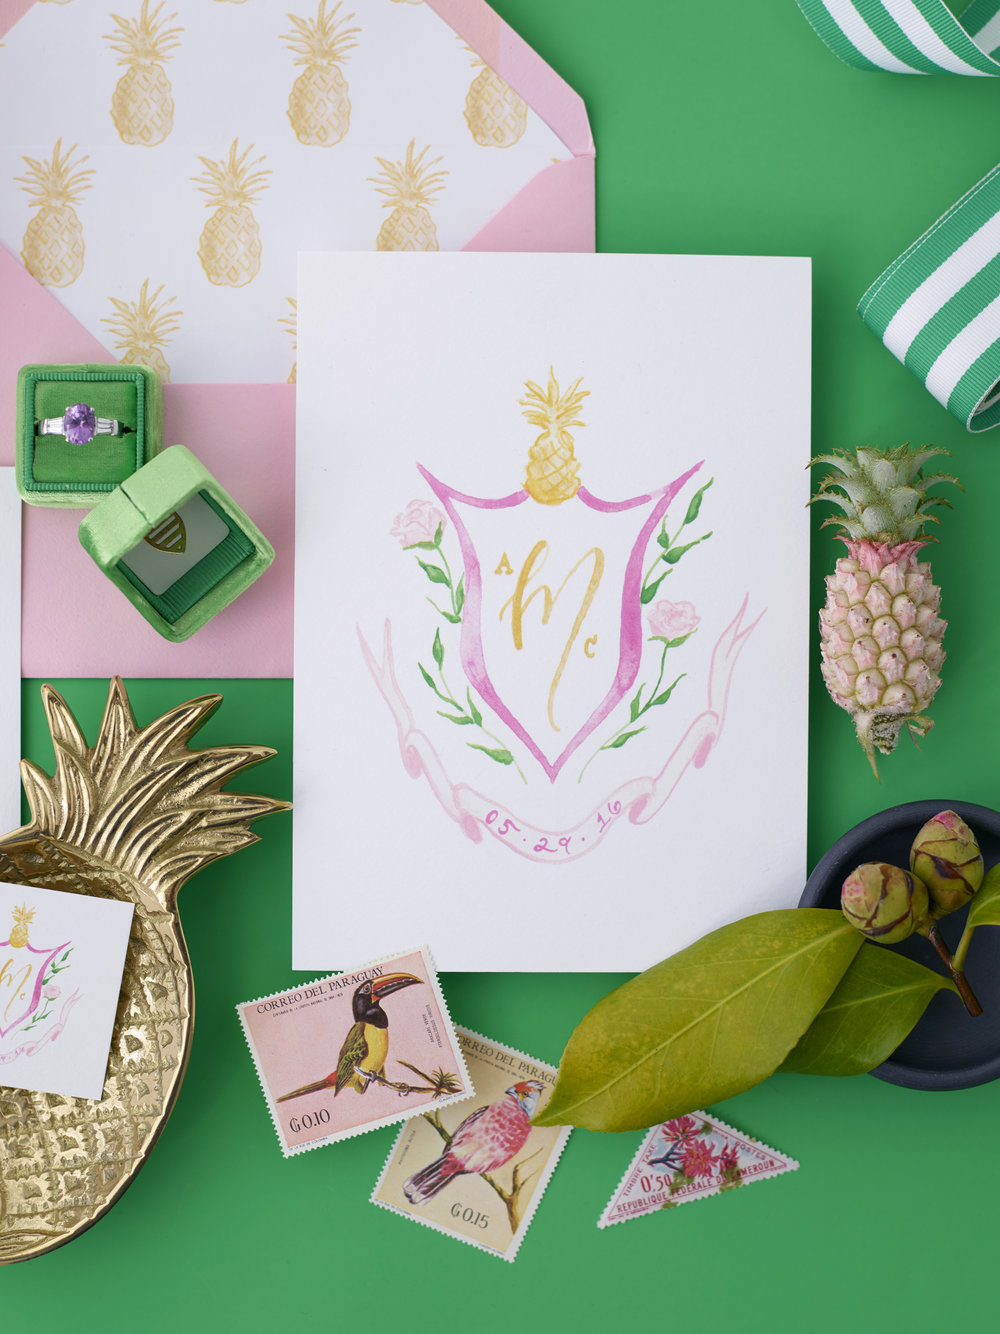 Pineapple Wedding Invitations | Southern preppy Charleston wedding invitations | Custom watercolor wedding crest with pineapple | Custom wedding invitations by Simply Jessica Marie | Photo by Jose Villa for The Mrs. Box